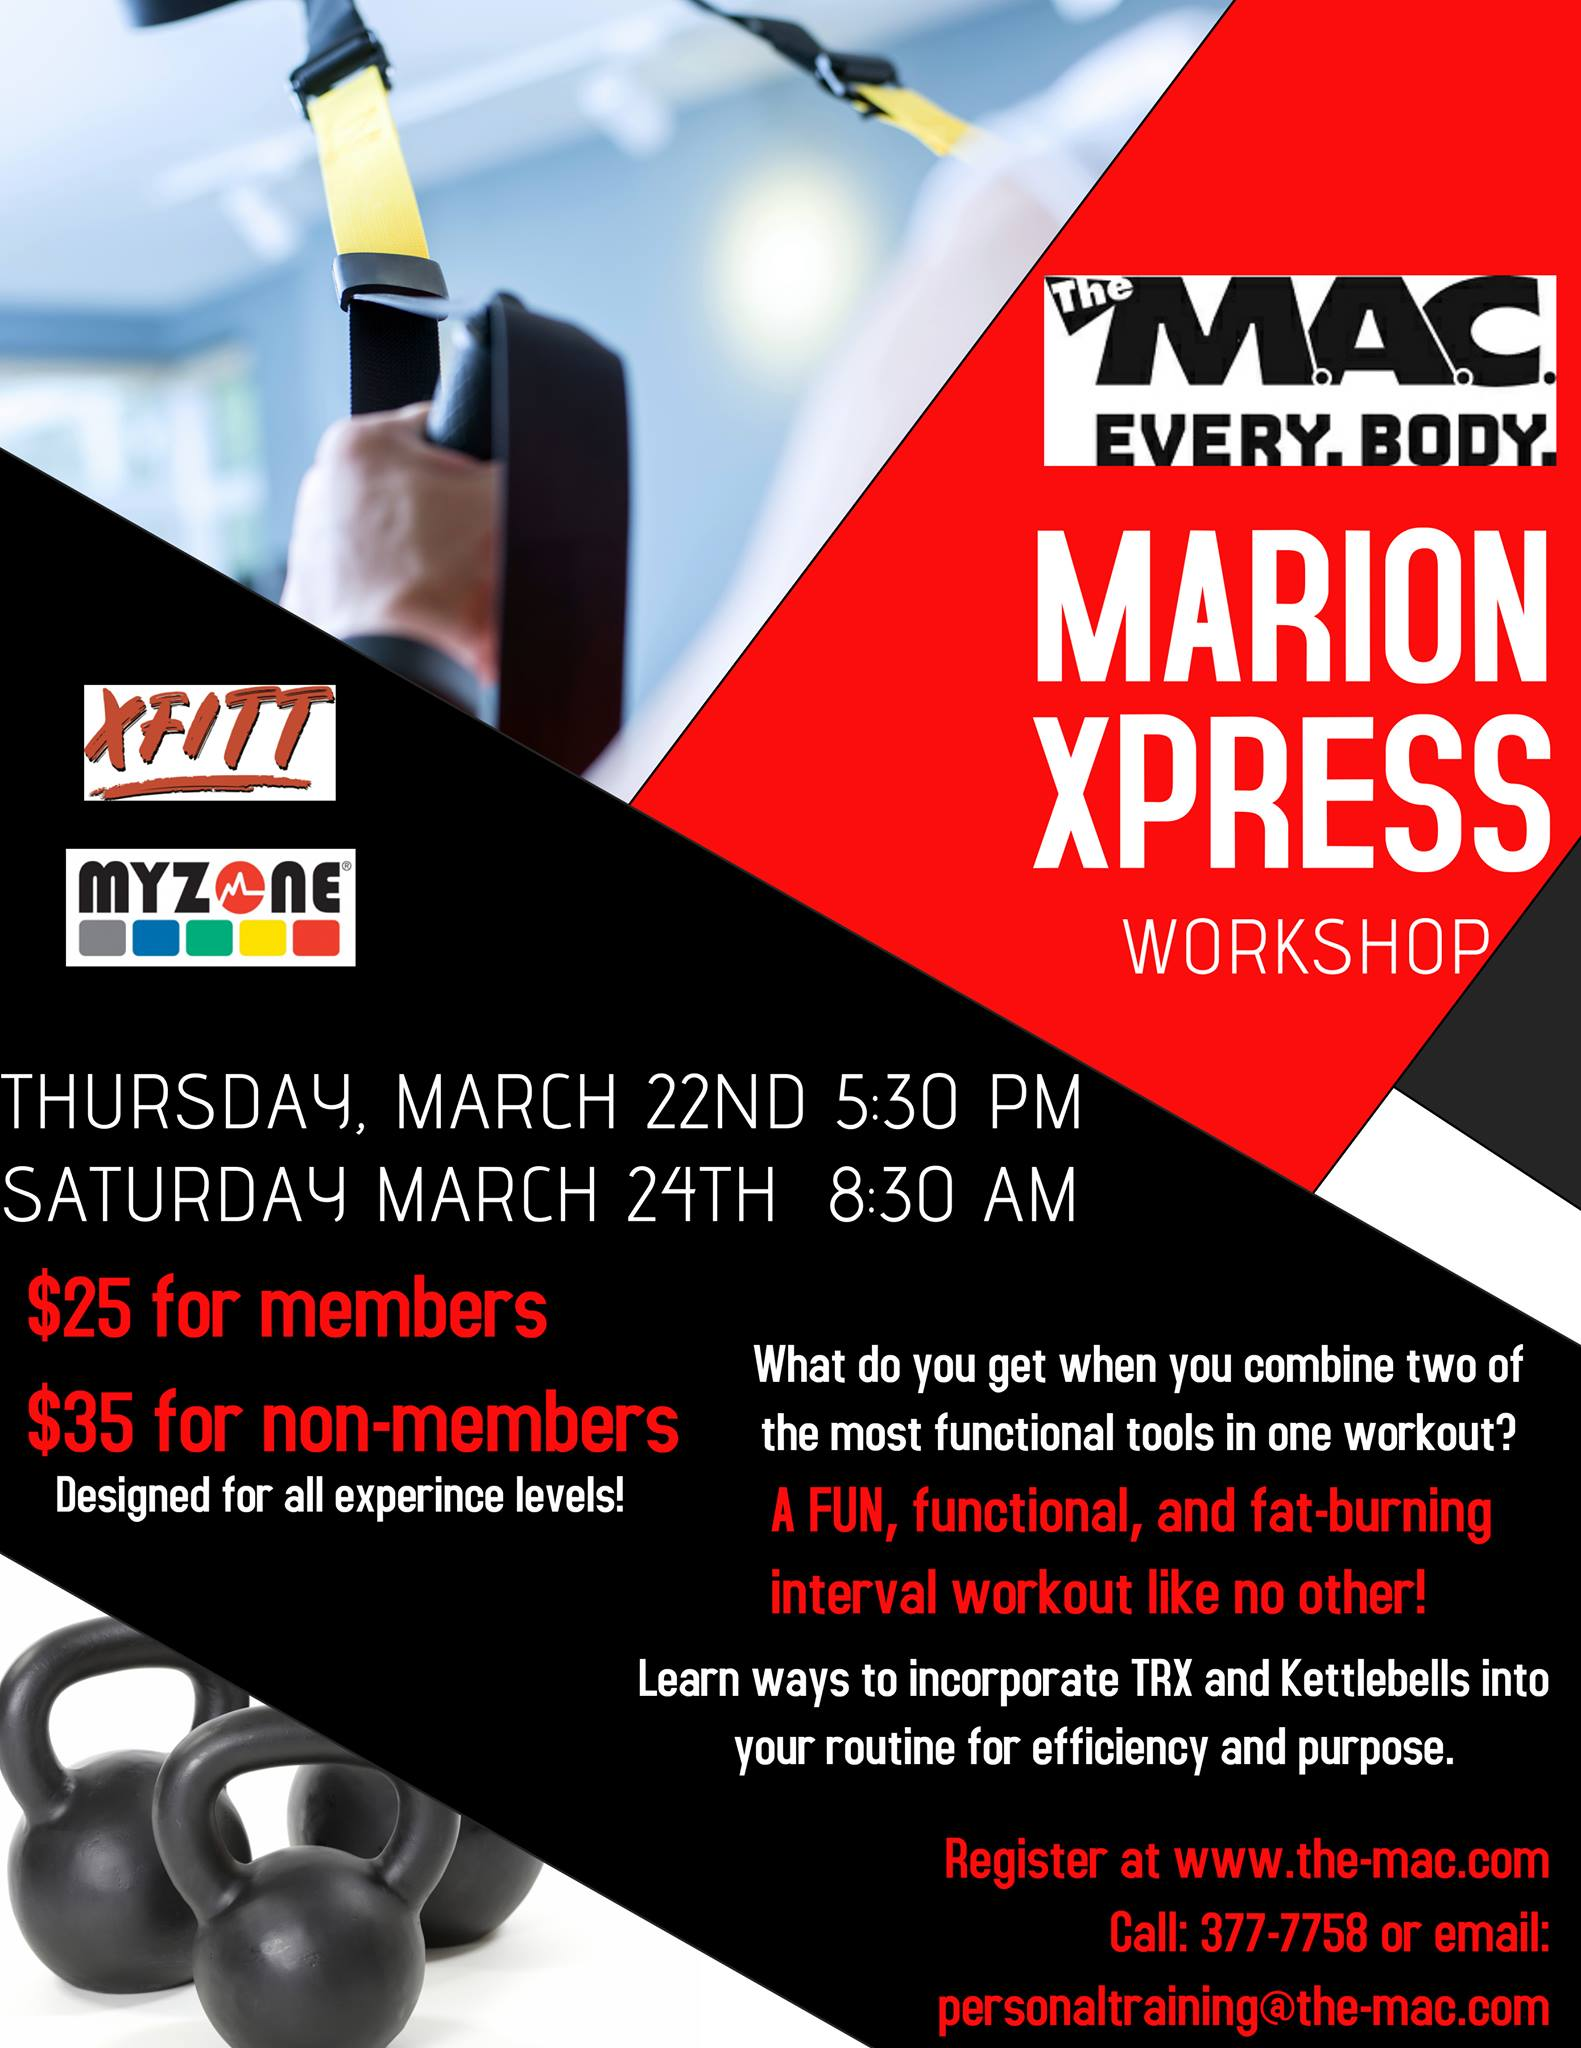 marion xpress workshop